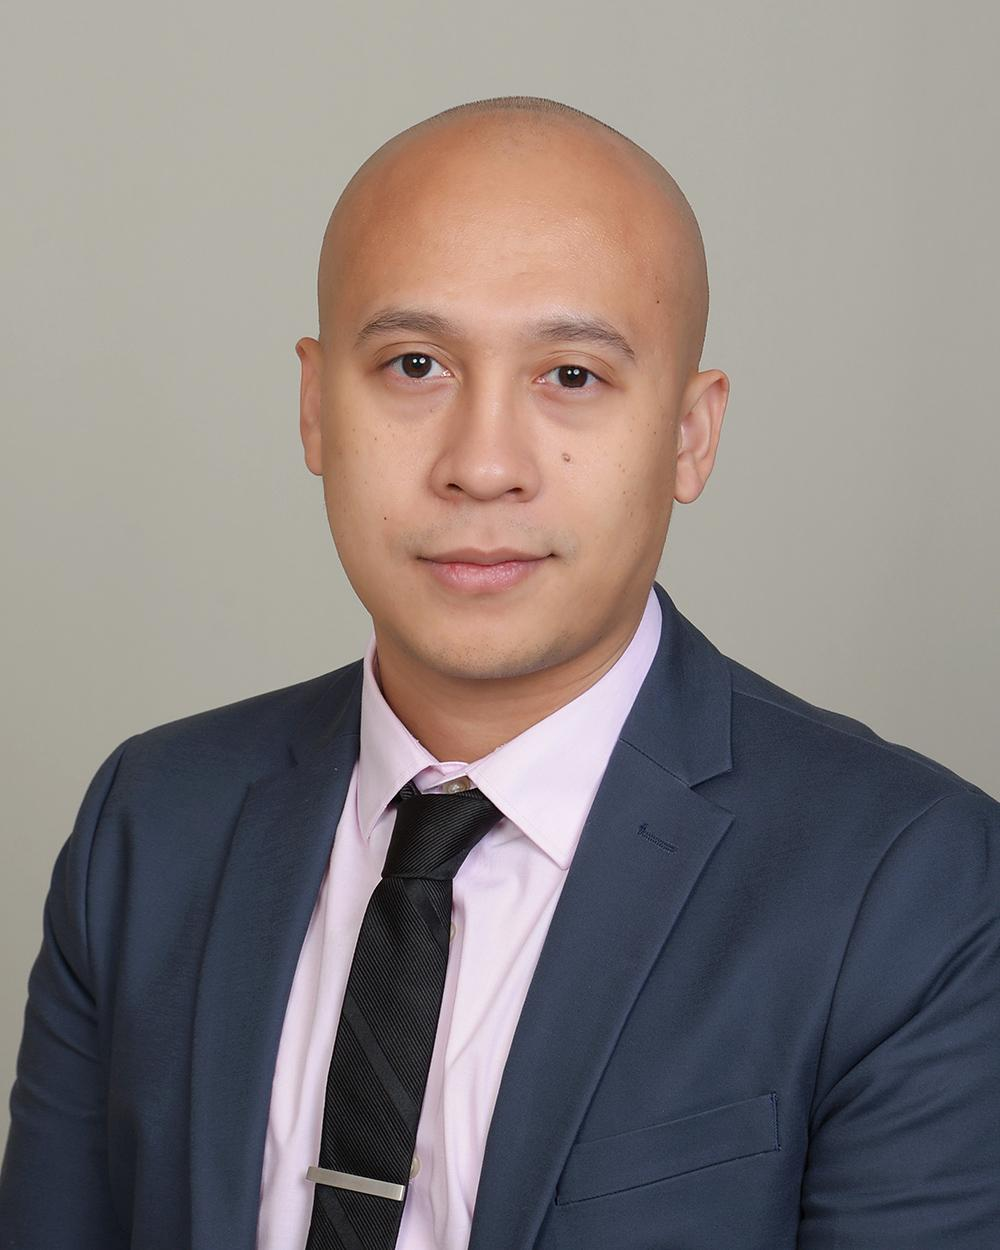 Profile Photo of Dr. Bryan Nguyen - None